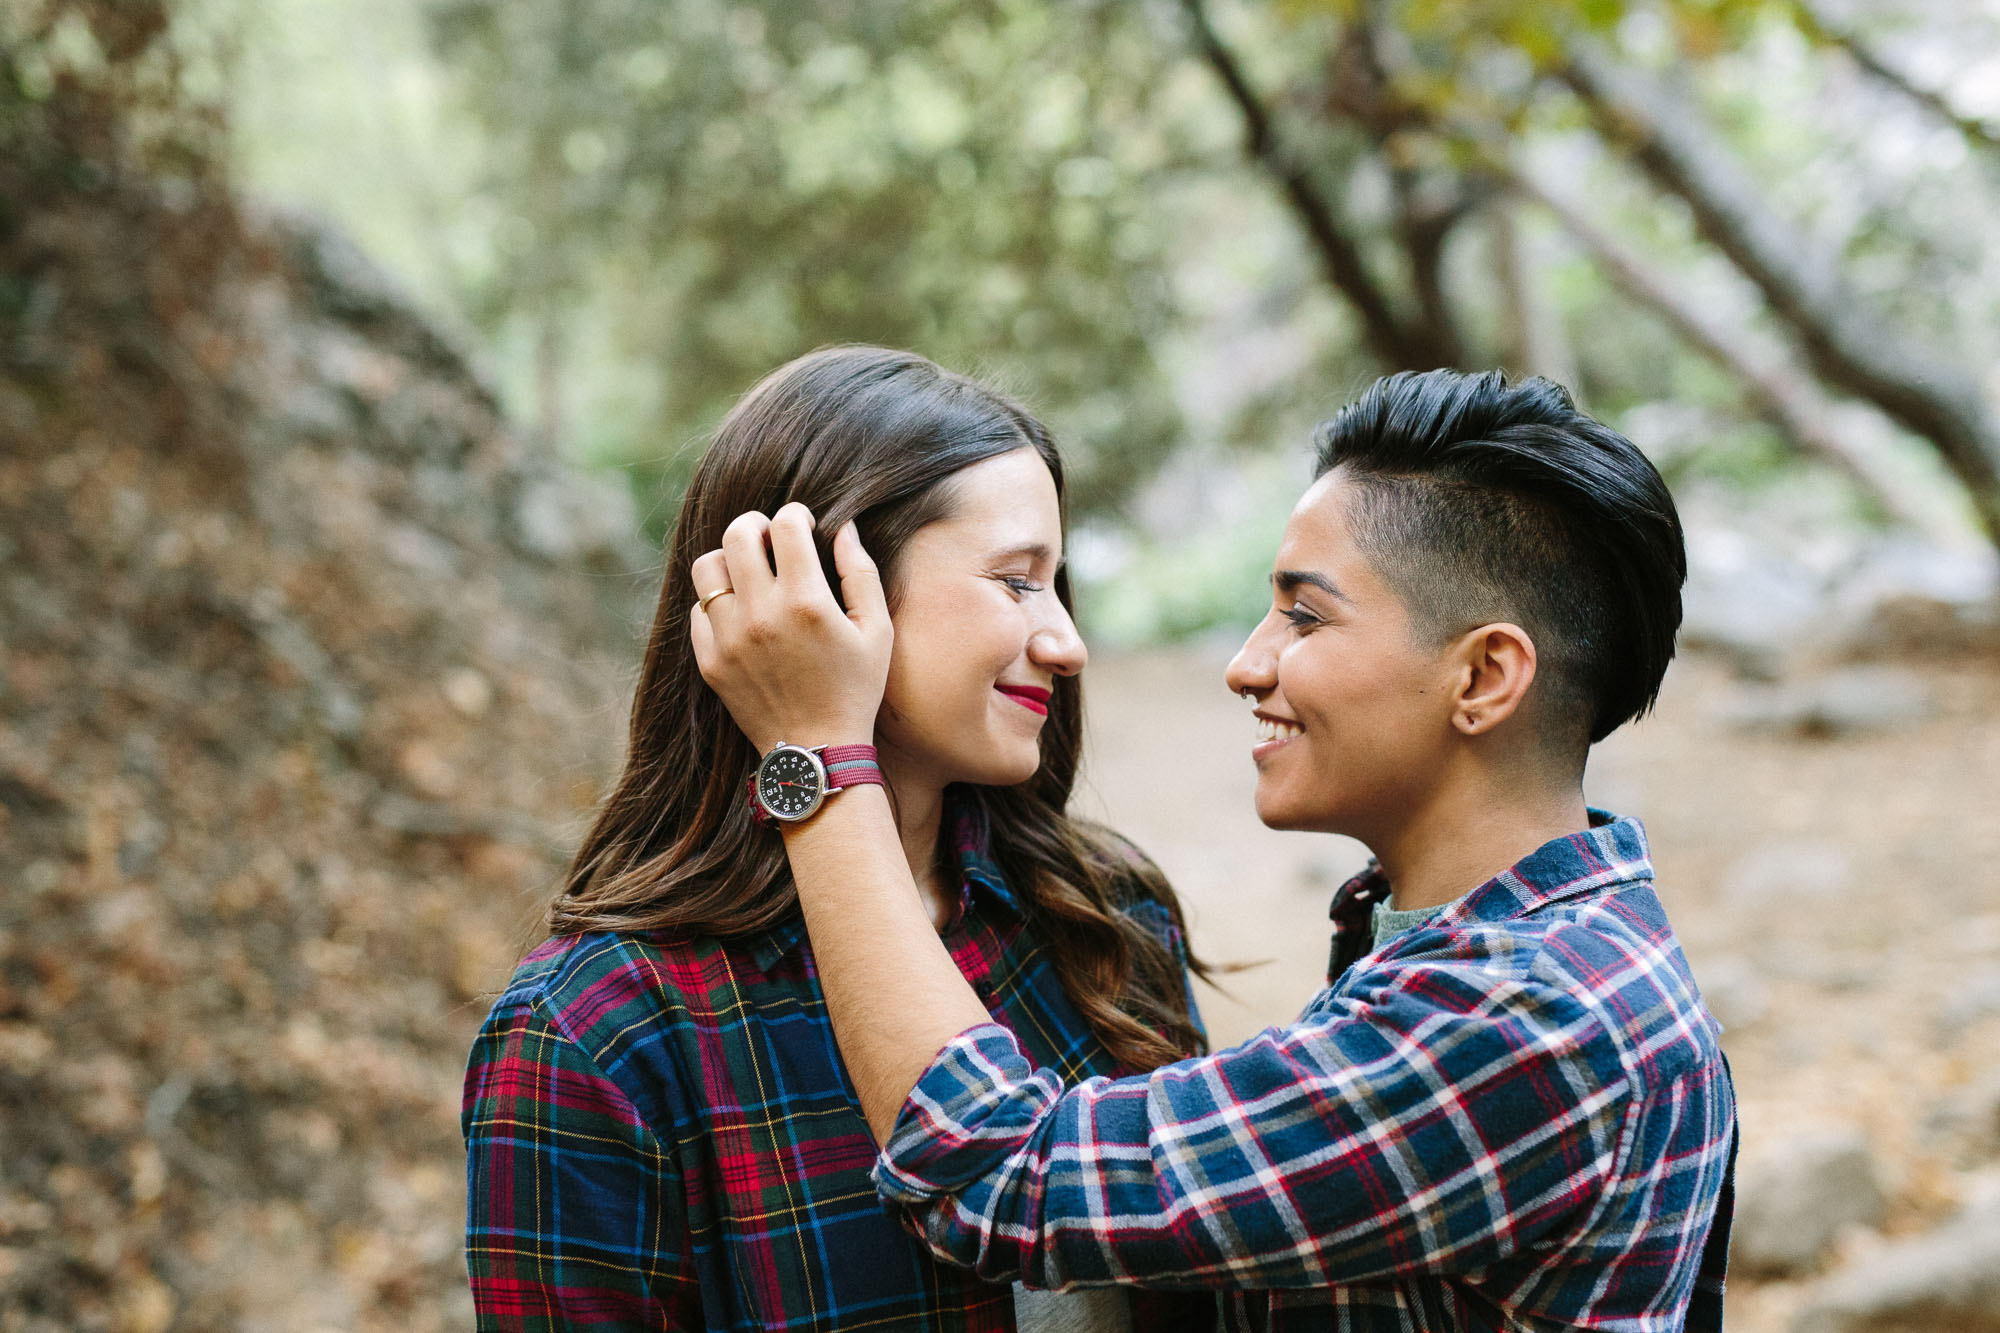 www-marycostaphotography-com-angeles-national-forest-engagement-0009